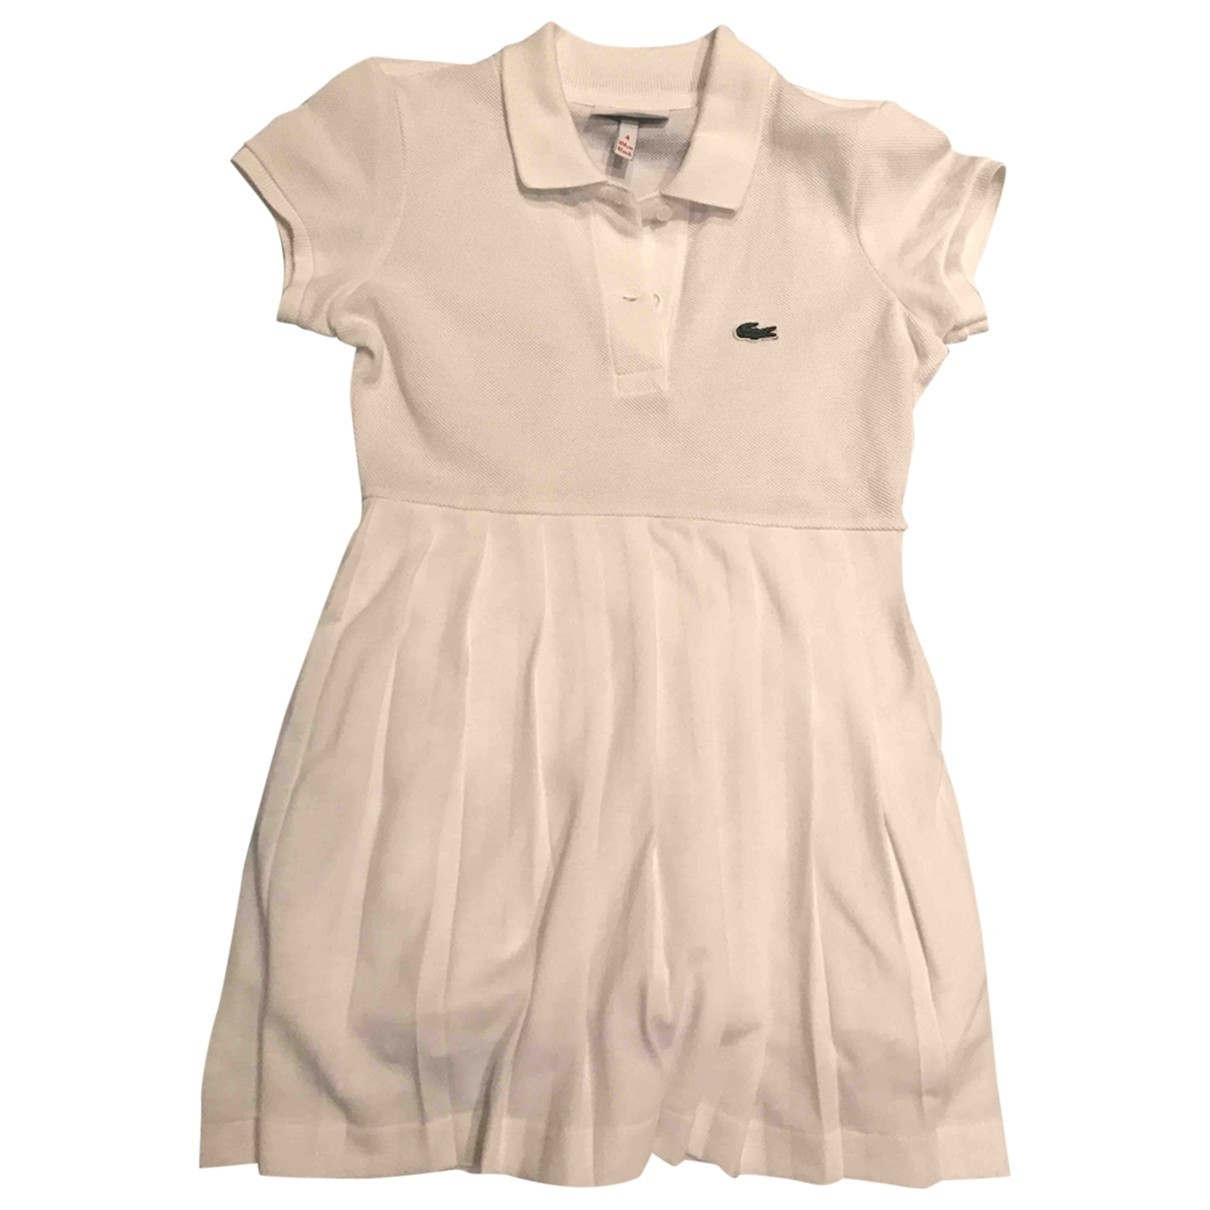 Lacoste \N White Cotton dress for Kids 4 years - up to 102cm FR